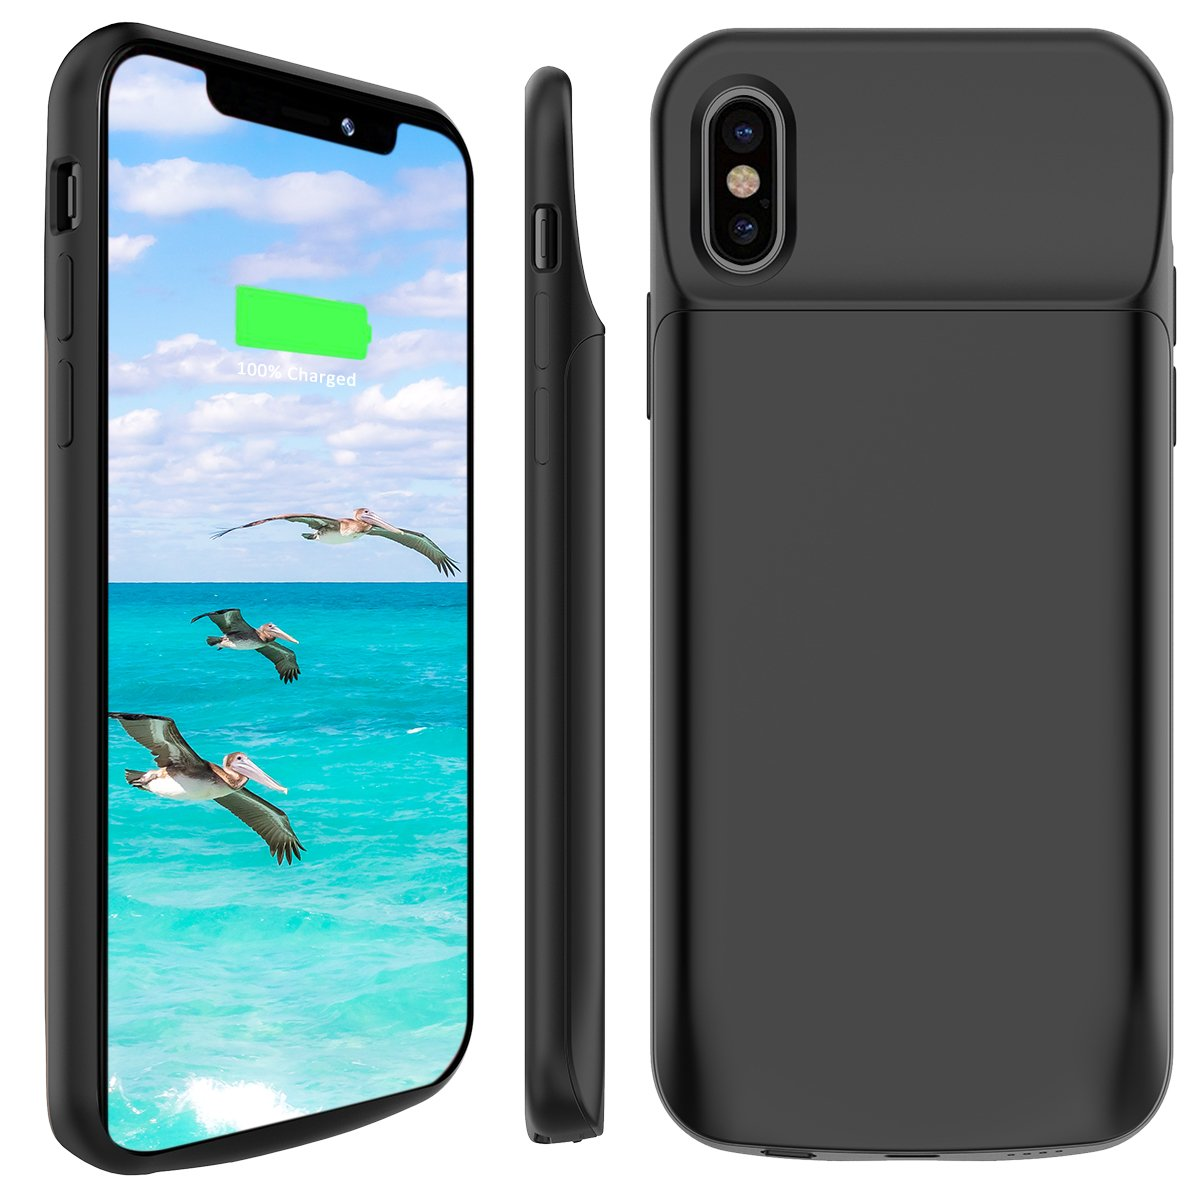 iPhone X Battery Case, Stoon 6000mAh Portable Charger Case Rechargeable Extended Battery Pack Protective Backup Charging Case Cover for Apple iPhone X, iPhone 10 (5.8 Inch) (Black)